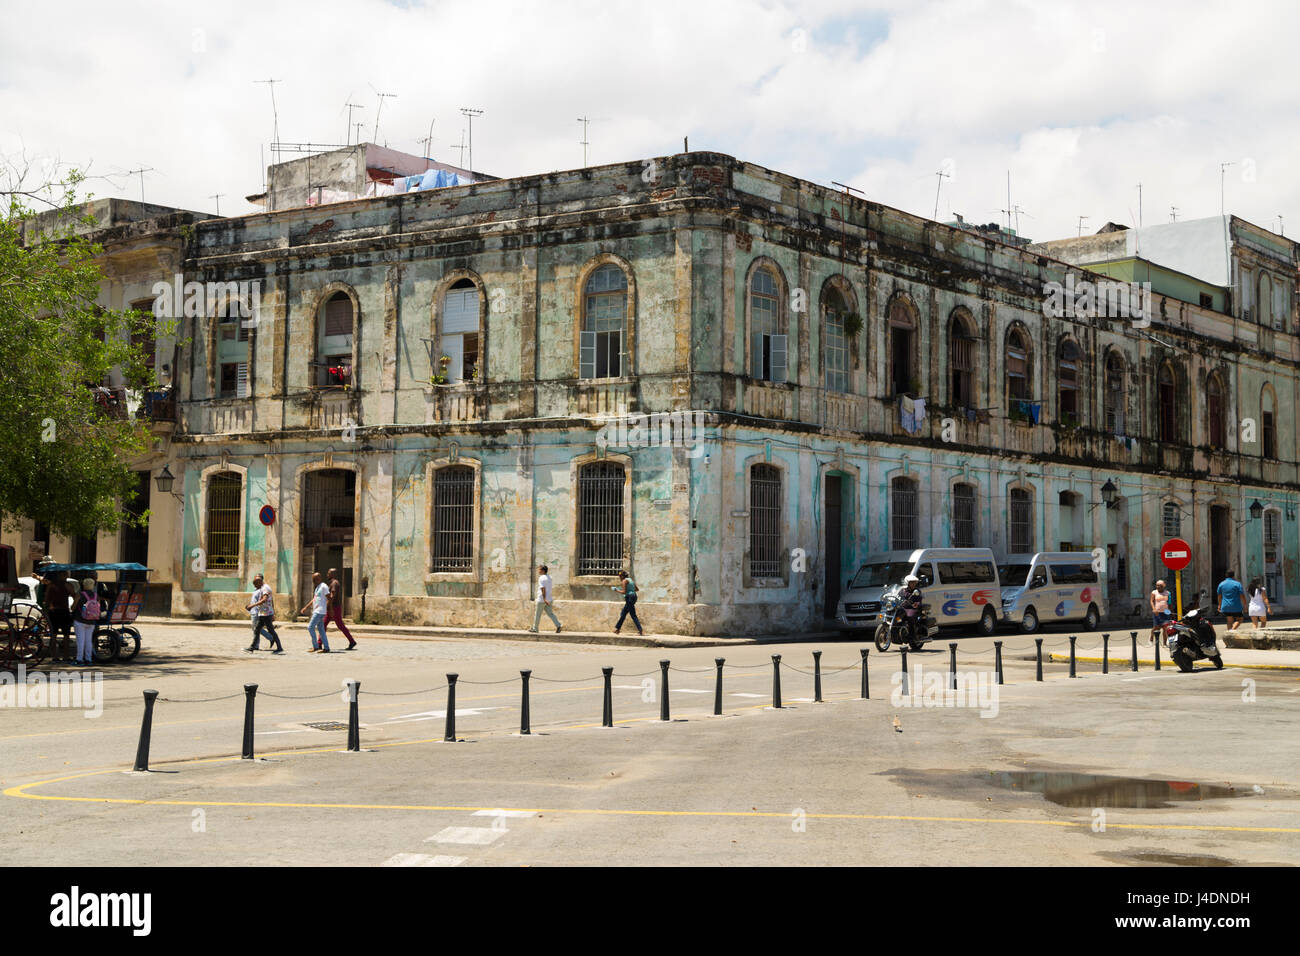 Old building in Havana, Cuba - Stock Image